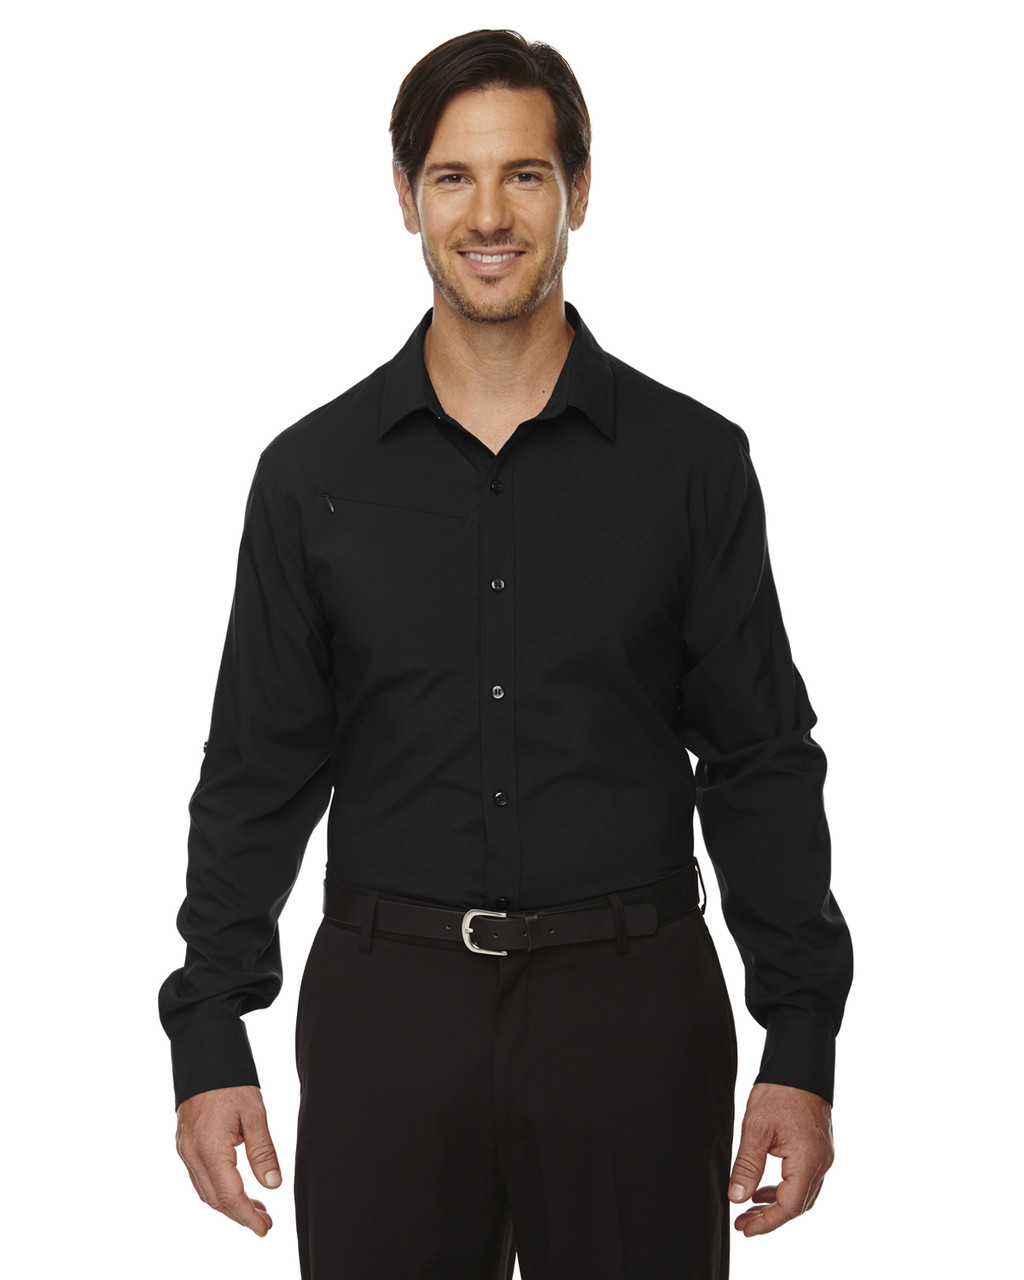 Black - 88804 North End Performance Shirt with Roll-Up Sleeves Shirt